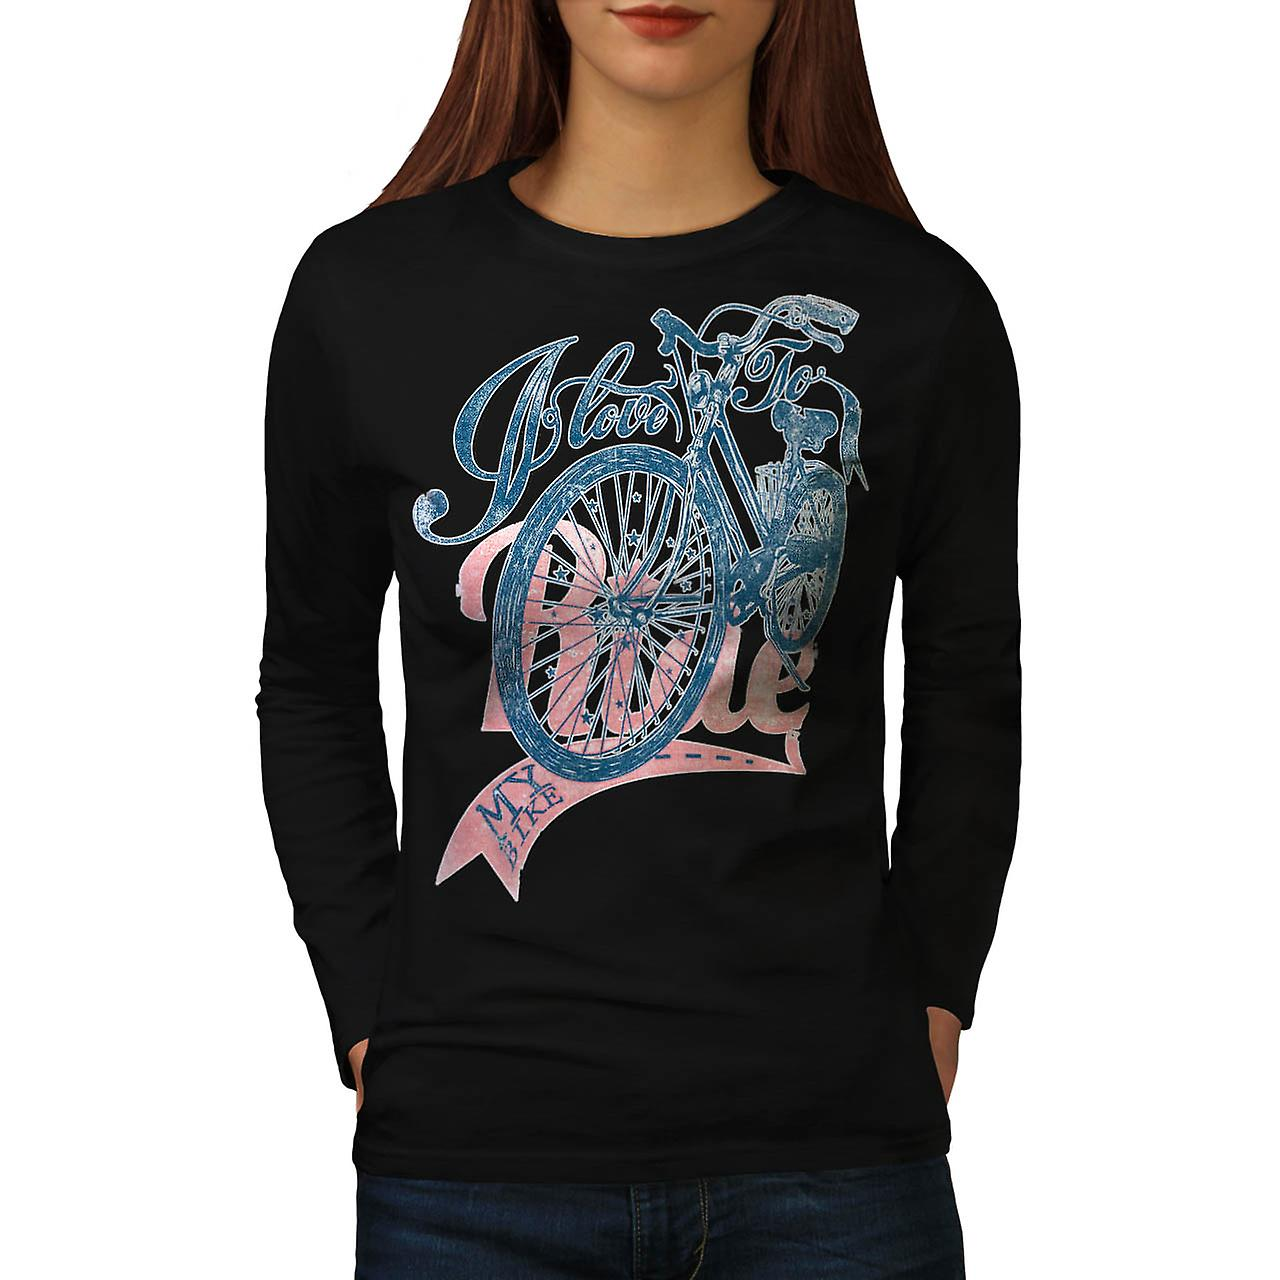 Love To Ride Cycling Bike Pedal Women Black Long Sleeve T-shirt | Wellcoda